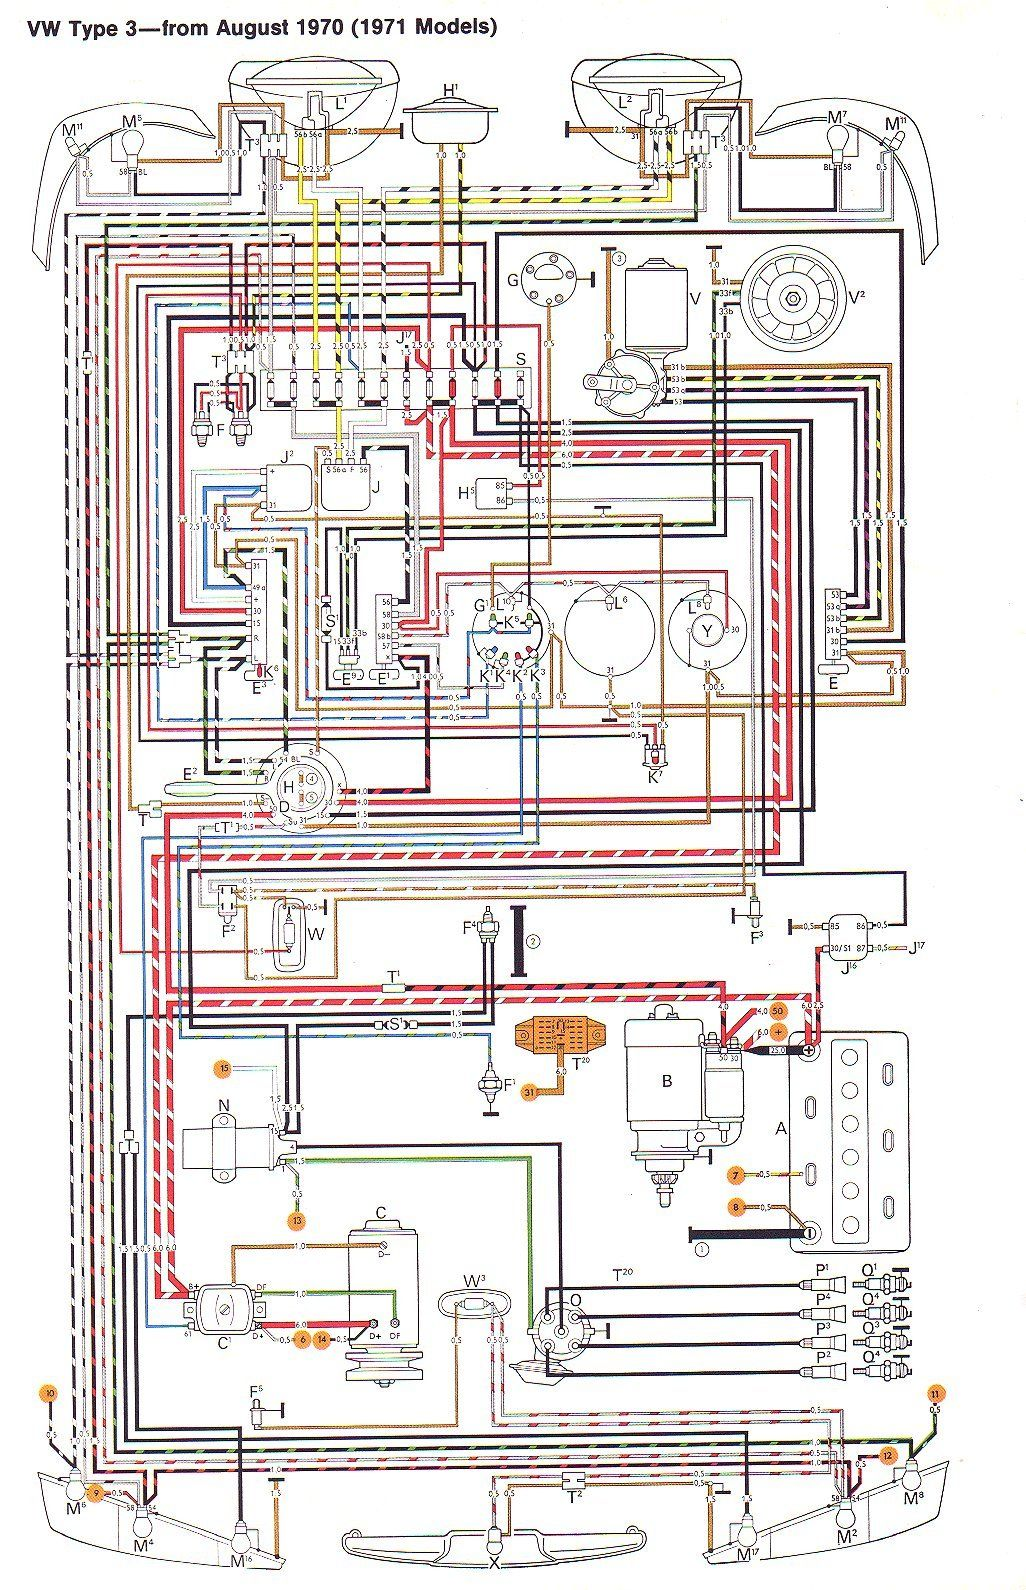 Vw Engine Wiring Experts Of Diagram Transporter T4 71 Volkswagen Detailed Schematics Rh Keyplusrubber Com Beetle